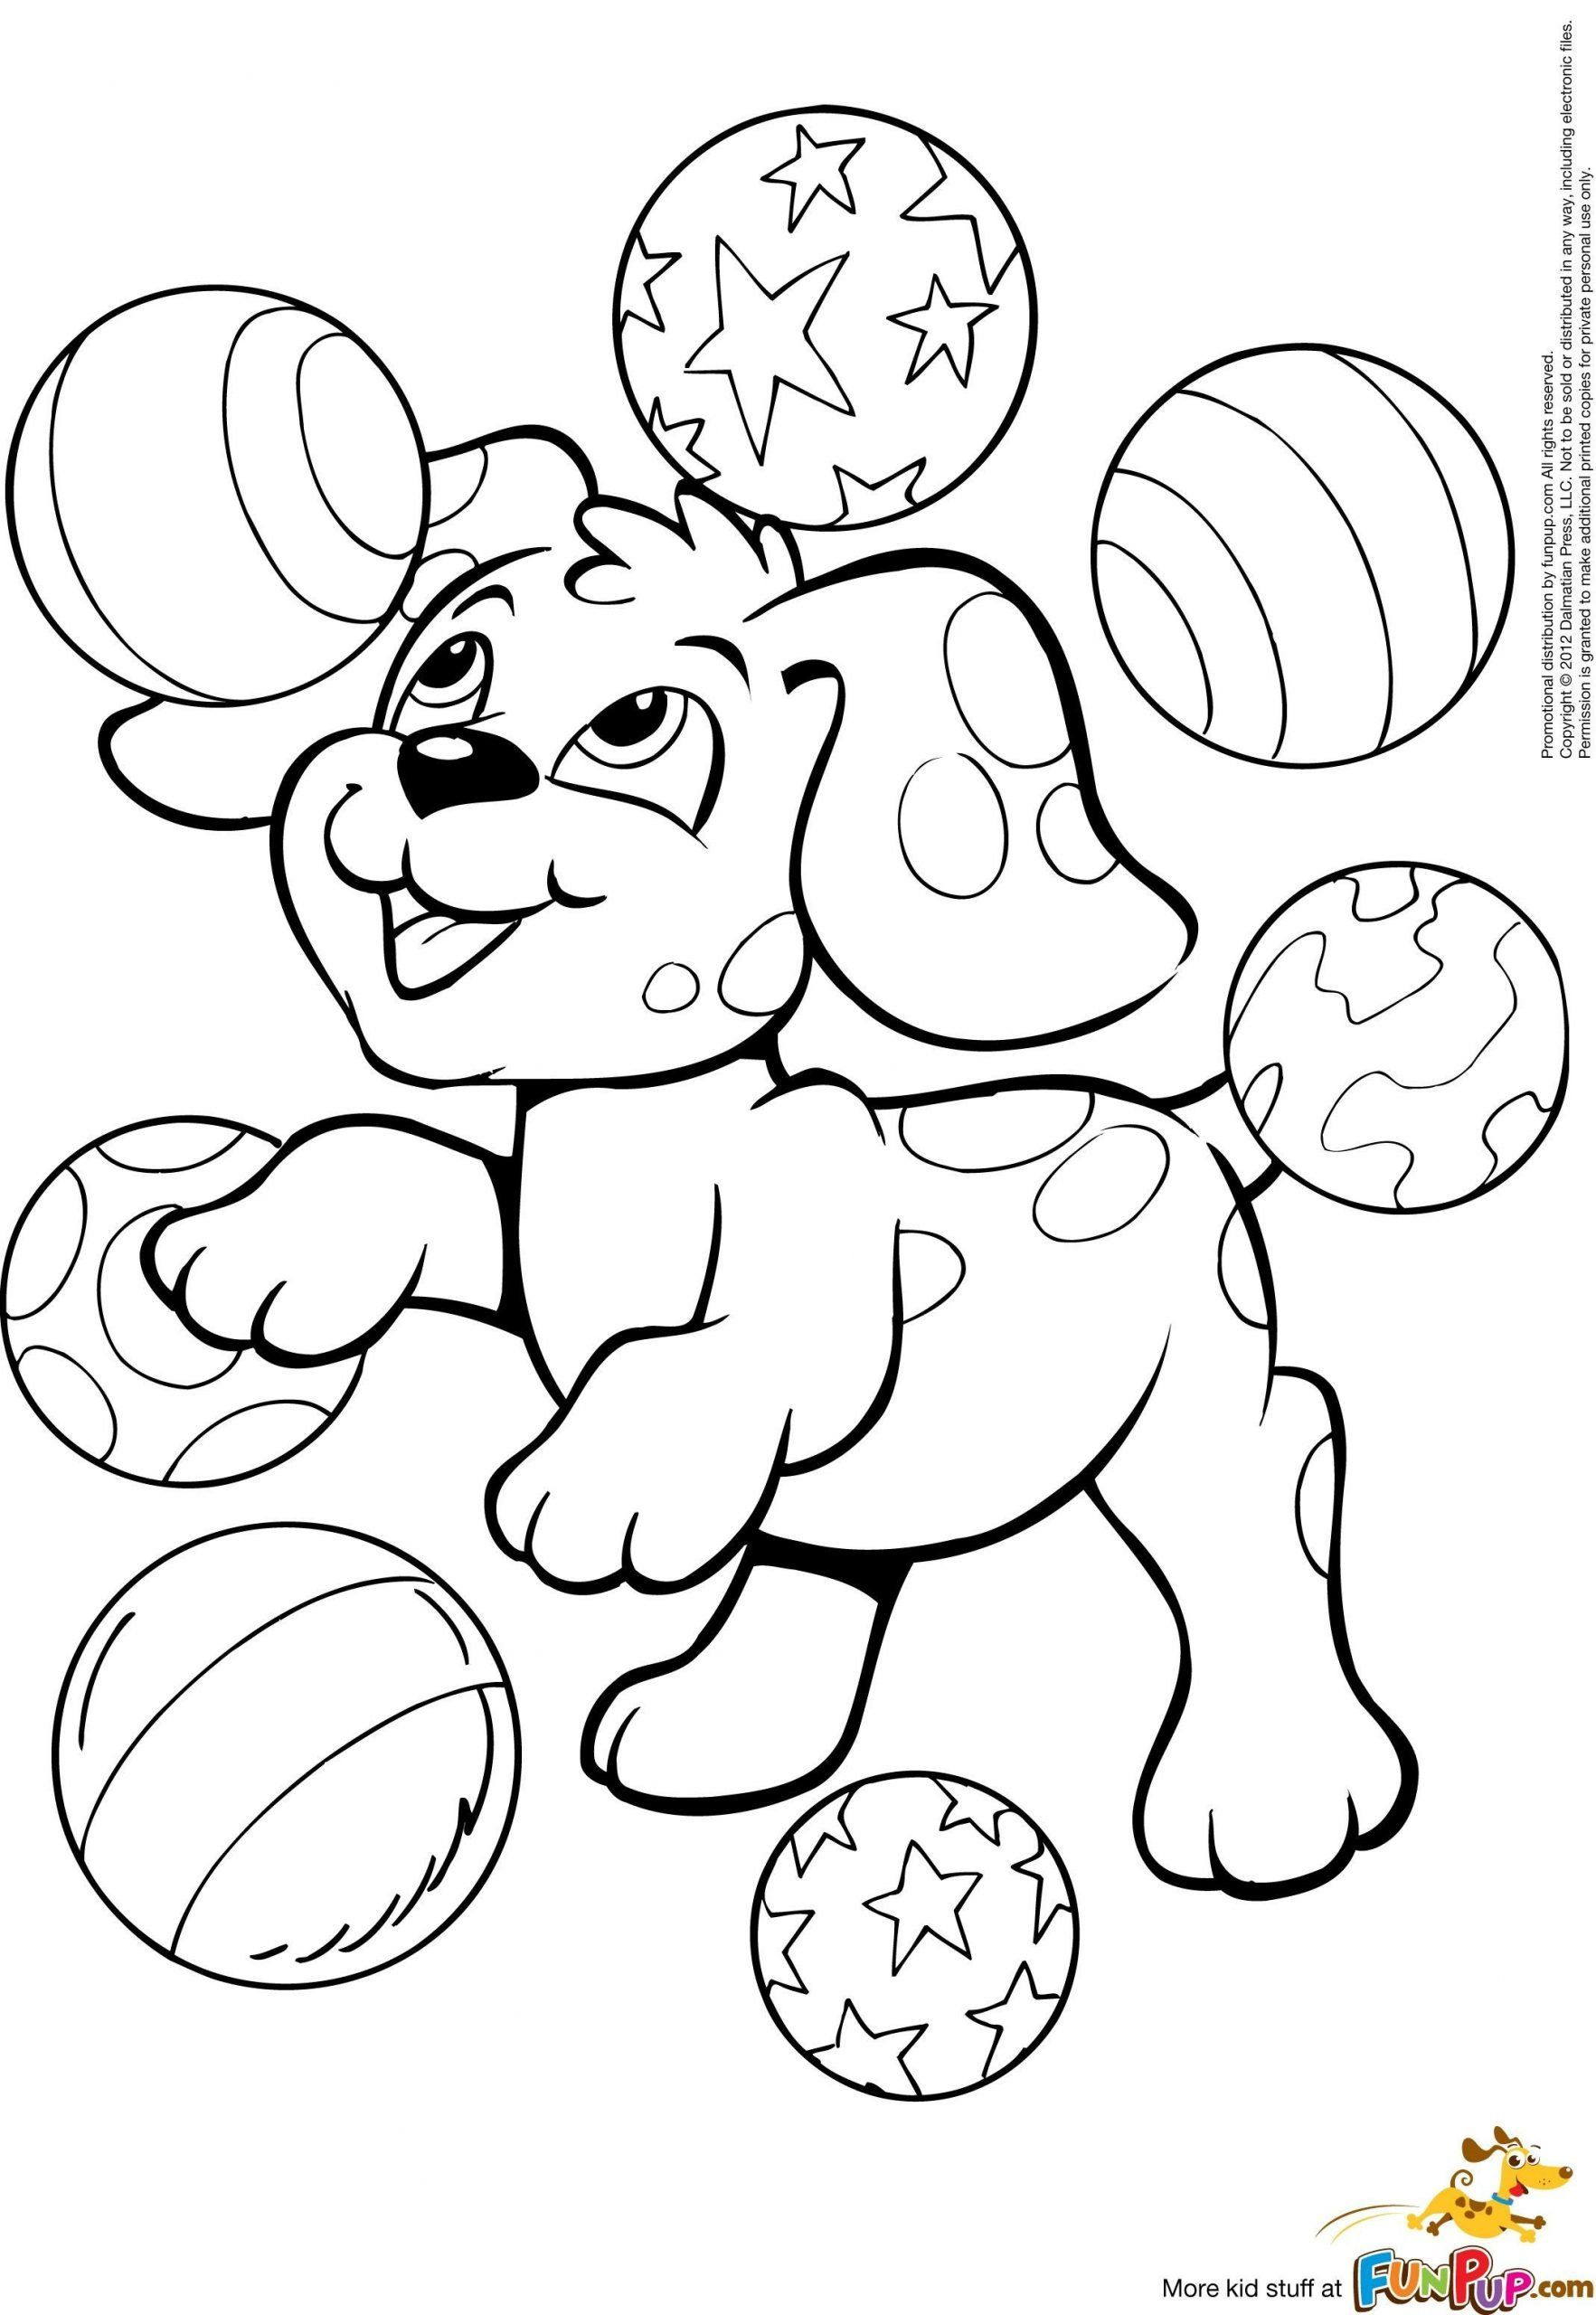 Cartoon Puppy Coloring Pages Perplexed By Dogs We Have The Knowledge You Need Puppy Coloring Pages Cool Coloring Pages Unicorn Coloring Pages